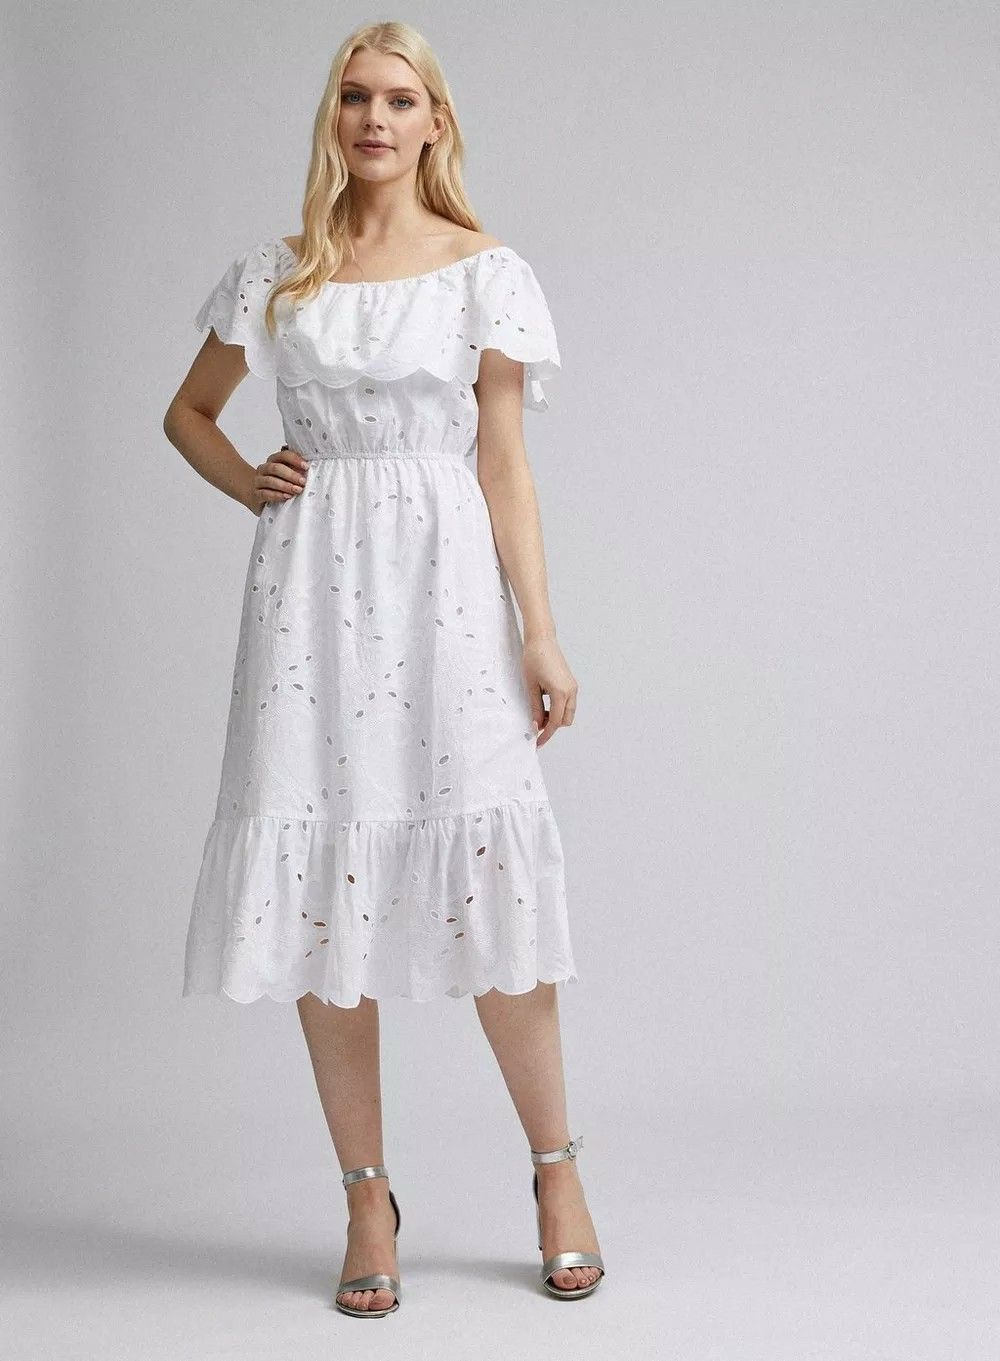 Pin By Toni Mason On Summer Looks Occasion Dresses Fit And Flare Dress White Midi Dress [ 1361 x 1000 Pixel ]